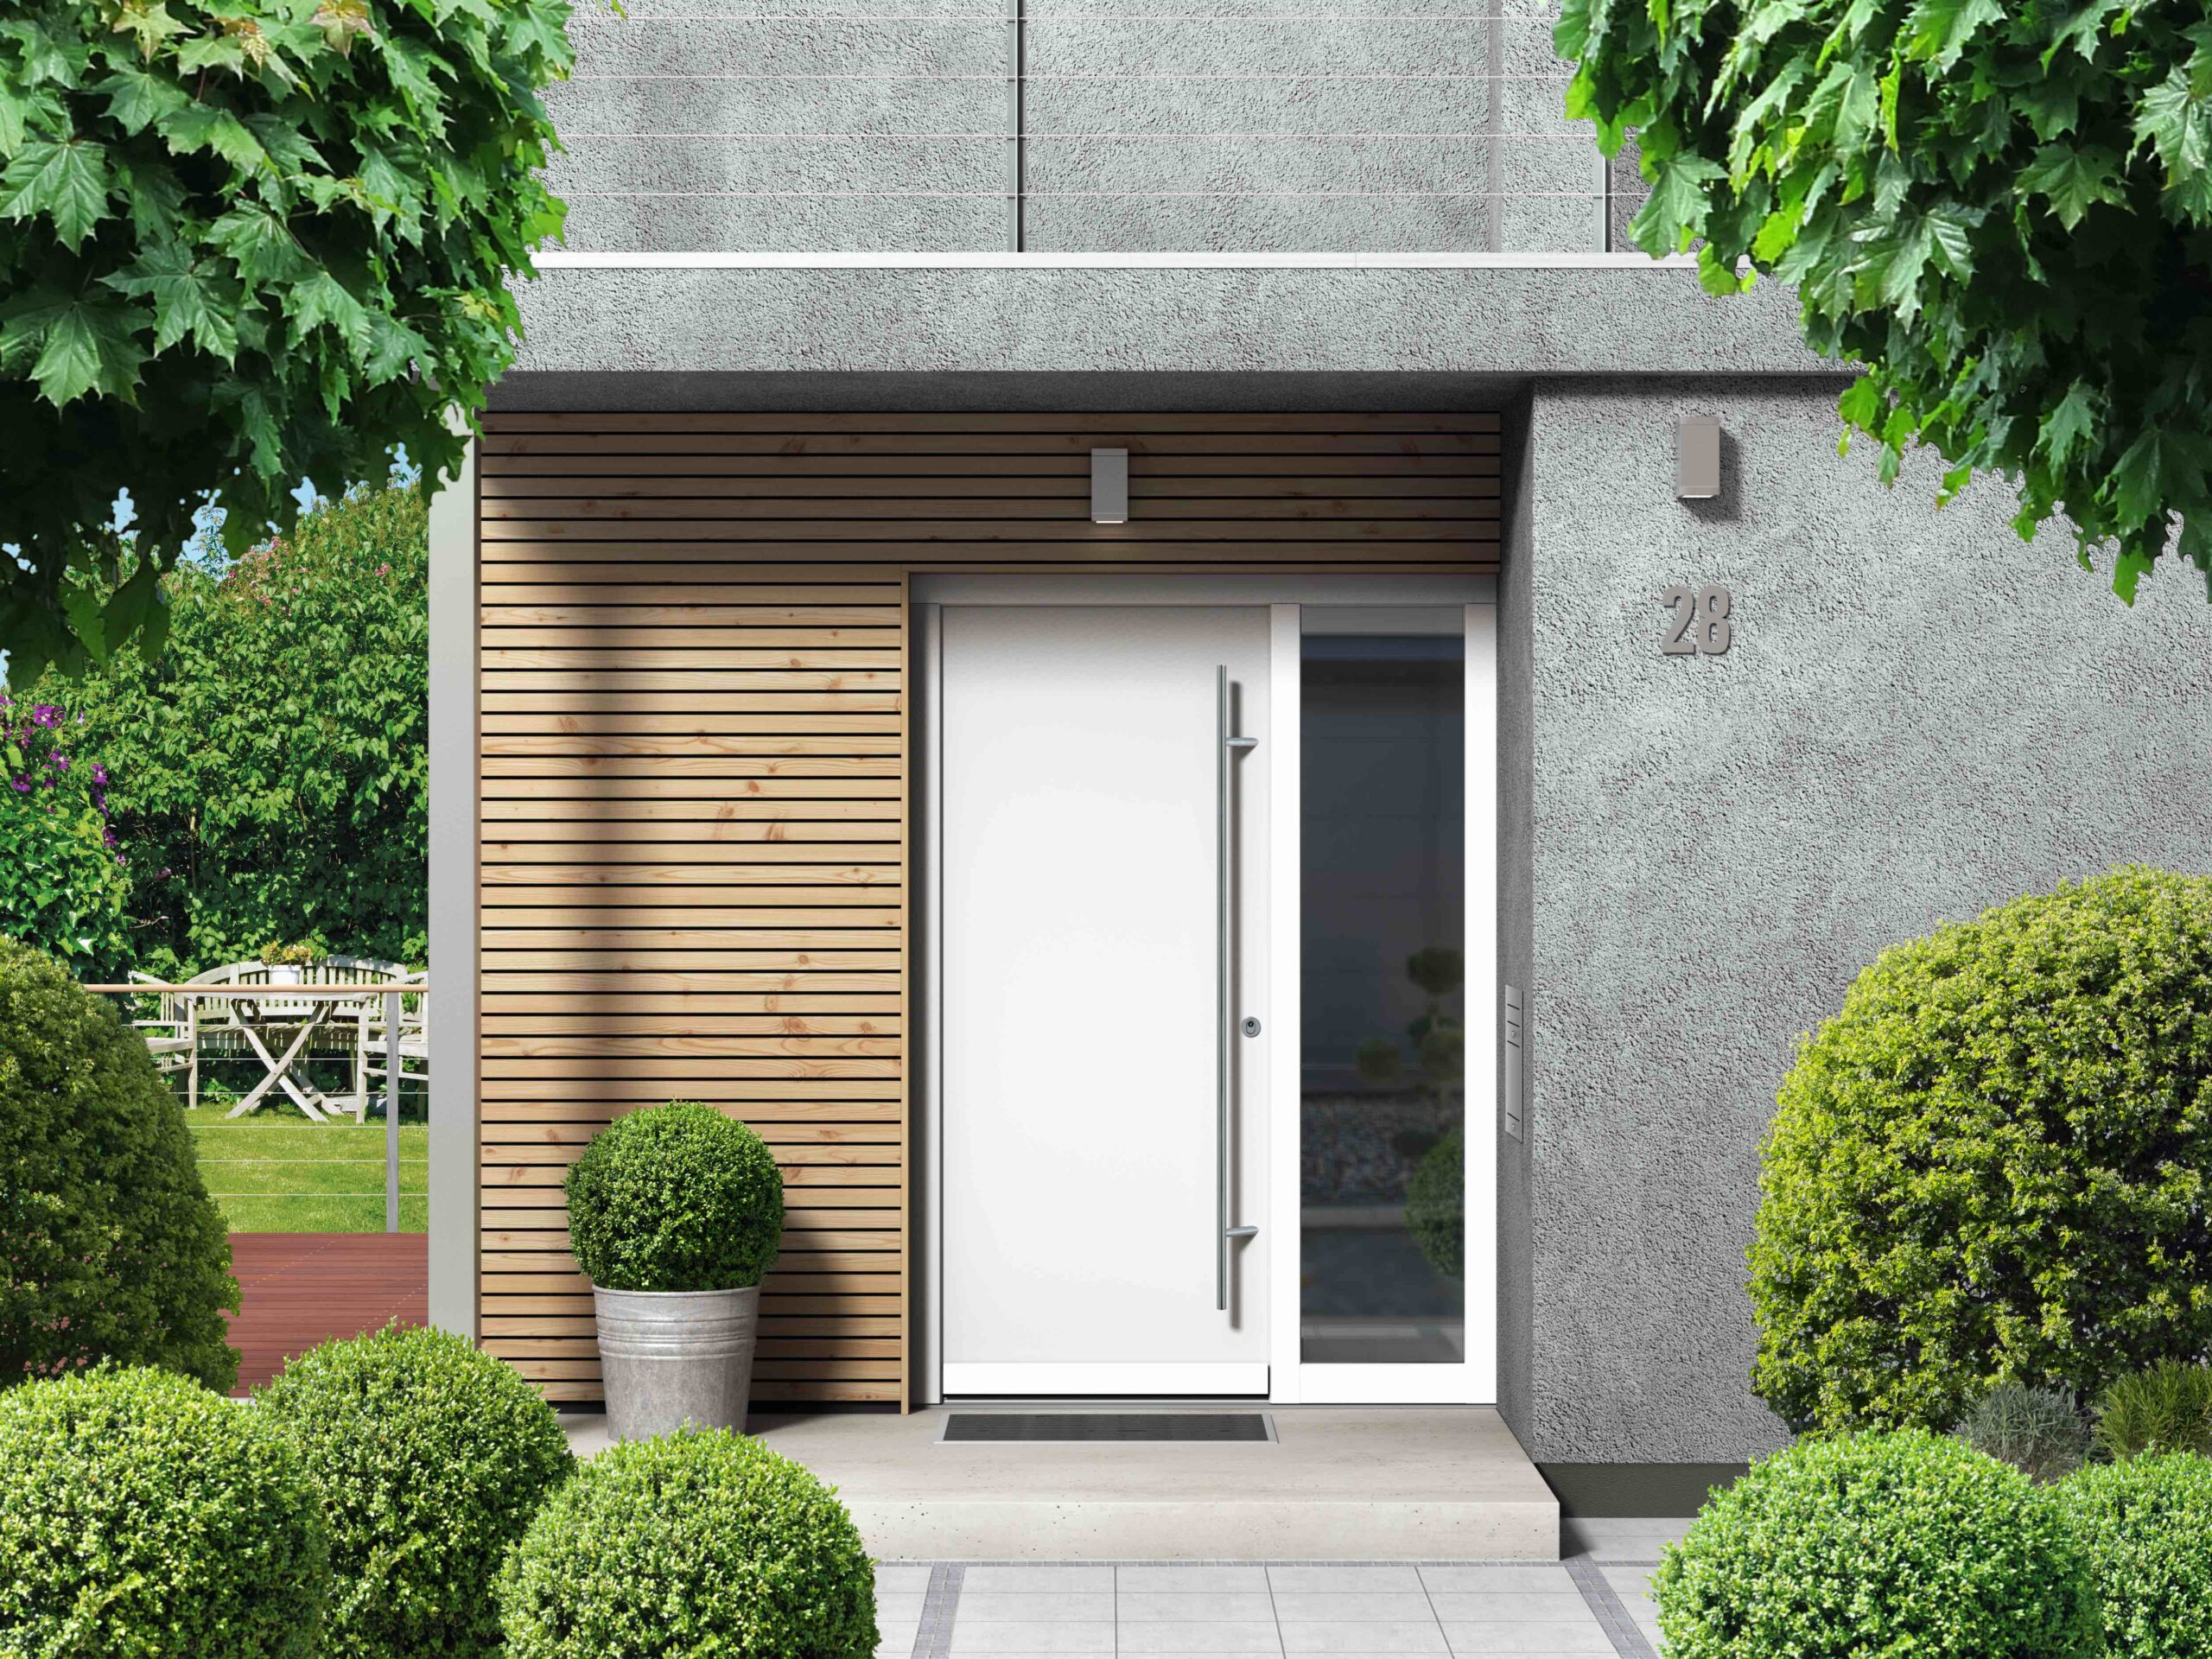 Concrete Homes are on the Rise. Here's Why